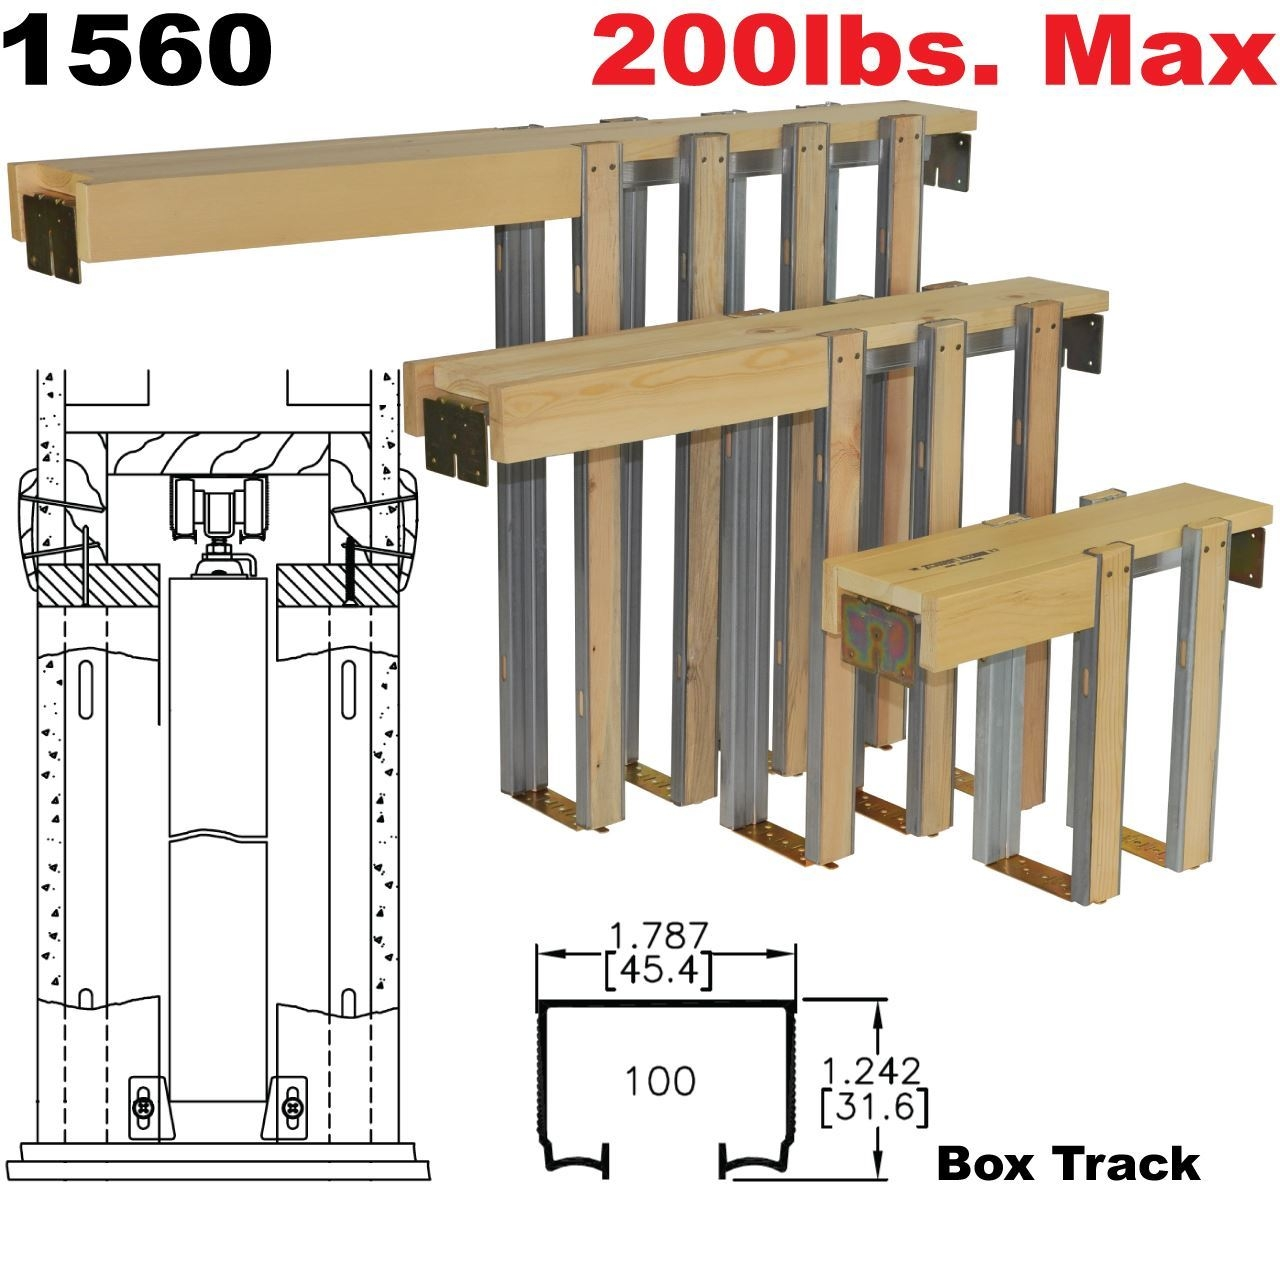 Johnson 100 Series Pocket Door Track johnson hardware 1560 pocket door frame johnsonhardware 1280 X 1280